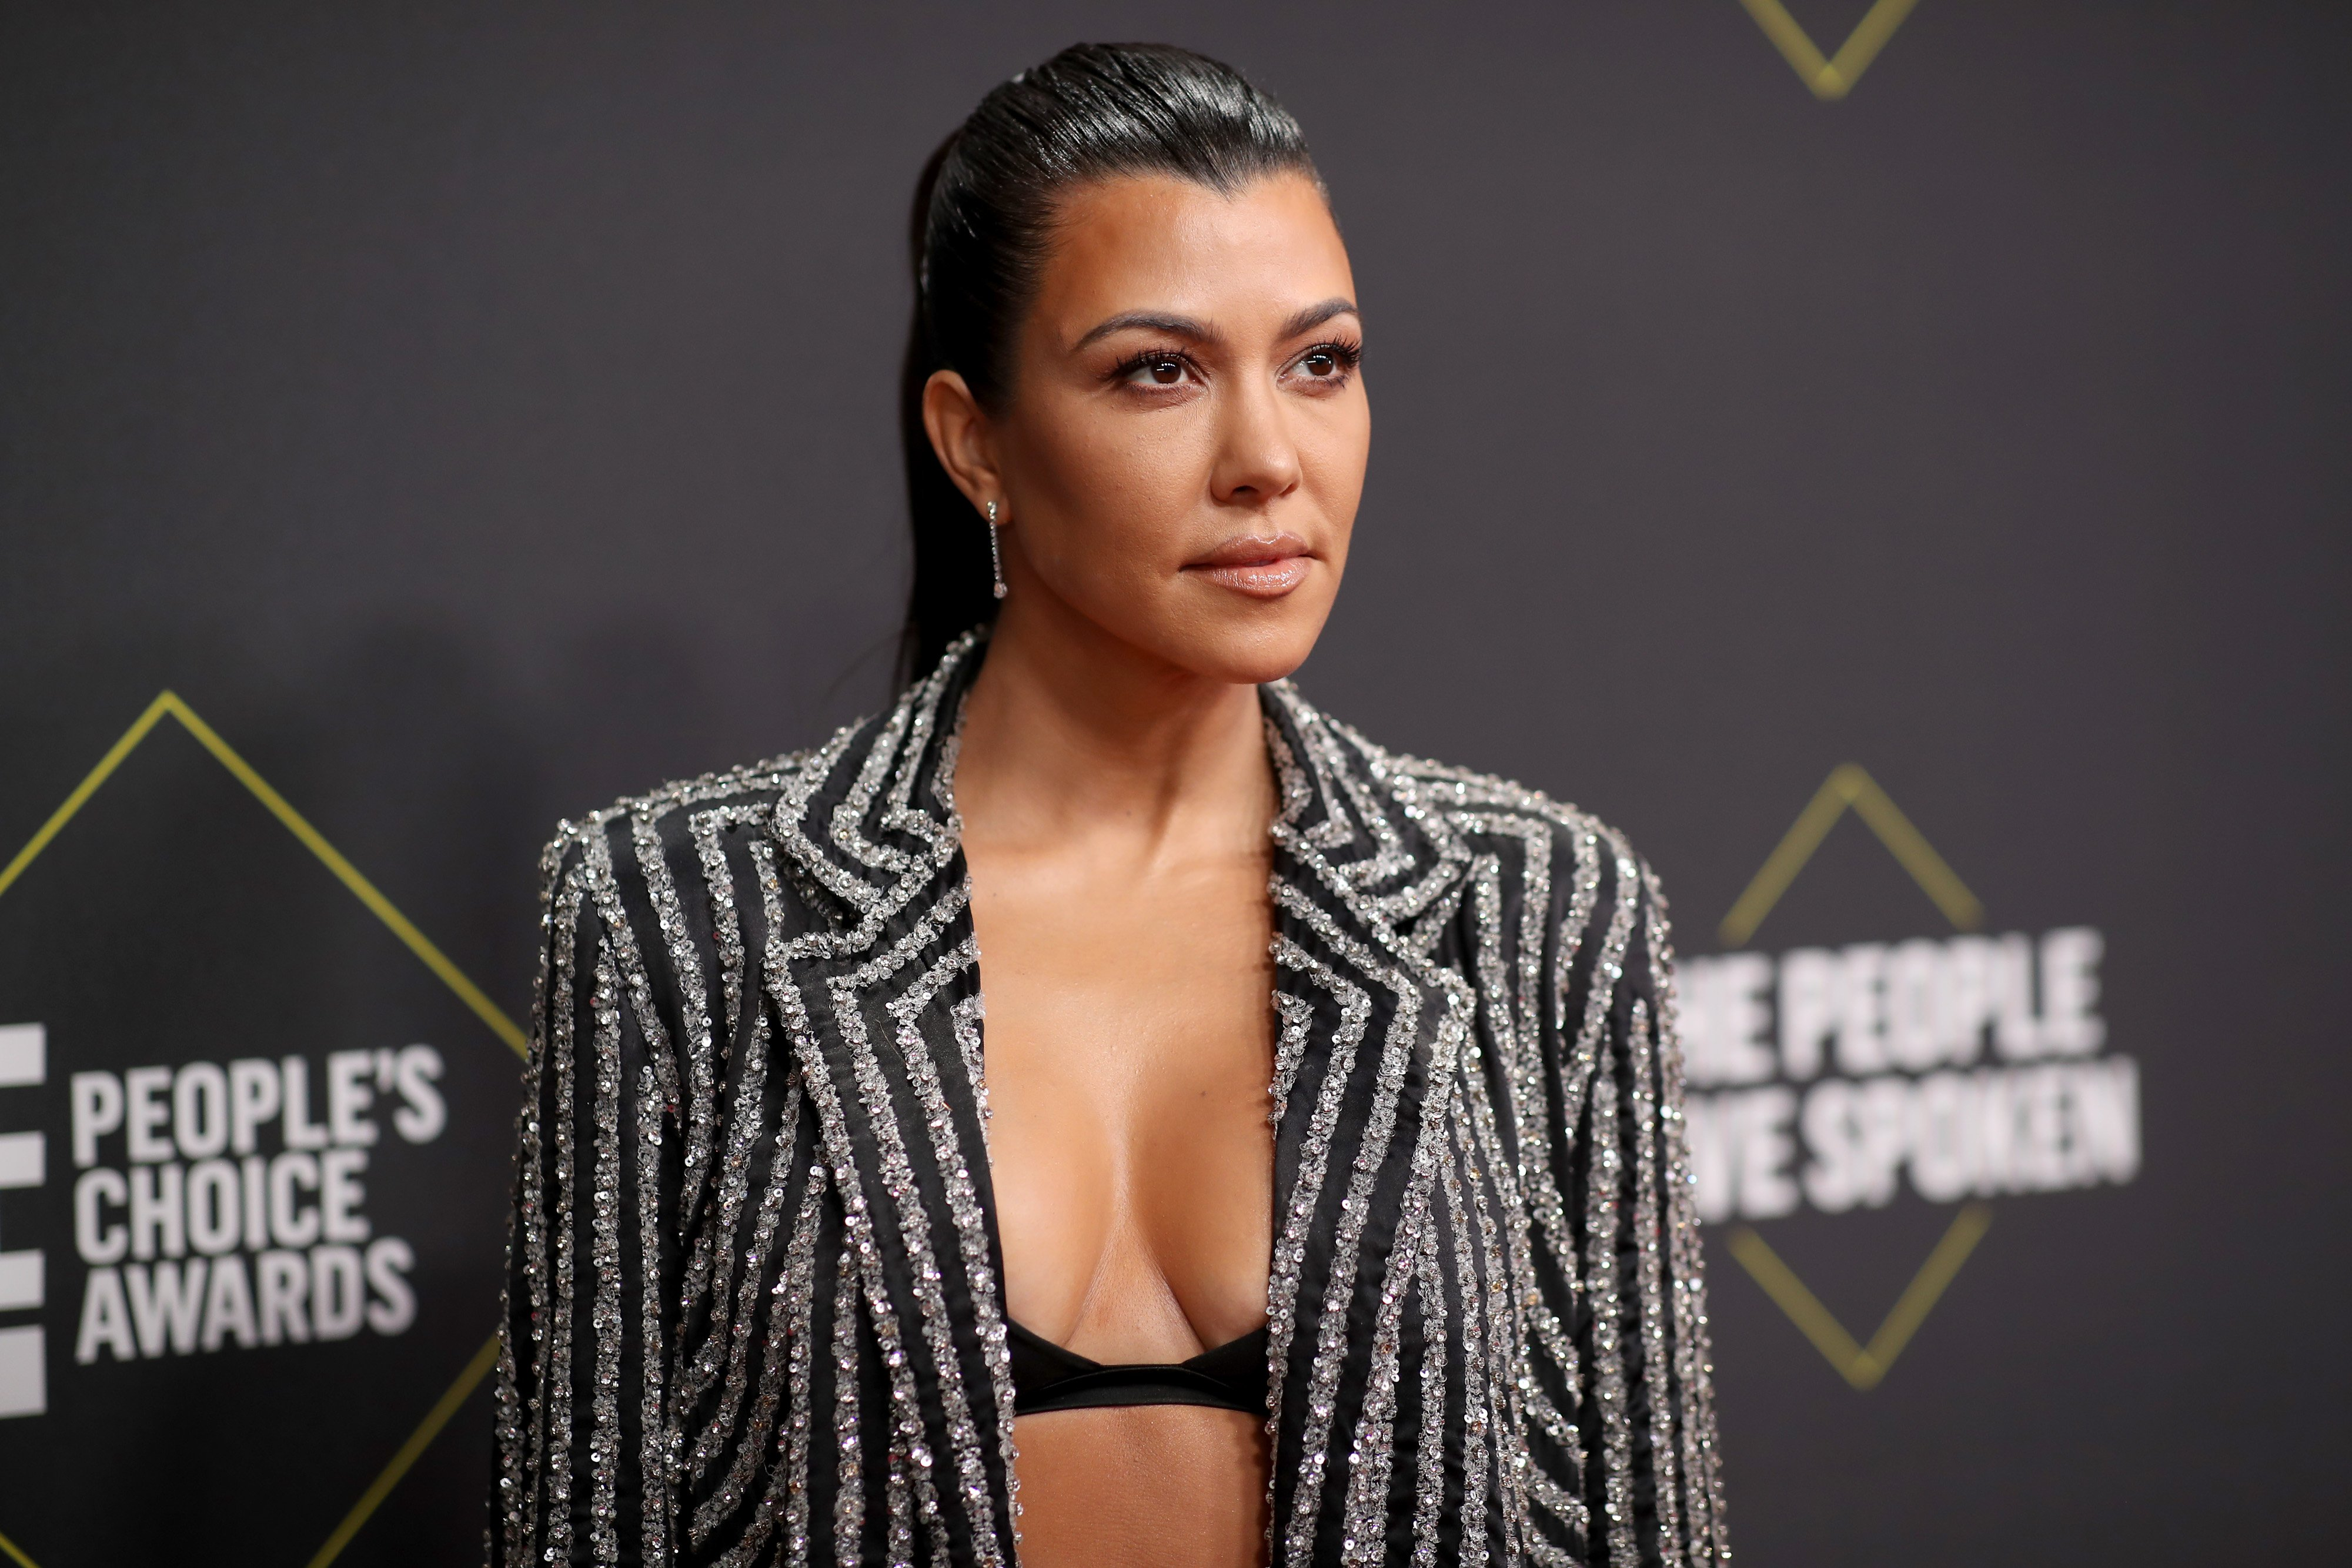 Kourtney Kardashian arrives to the 2019 E! People's Choice Awards held at the Barker Hangar on November 10, 2019. | Photo: Getty Images